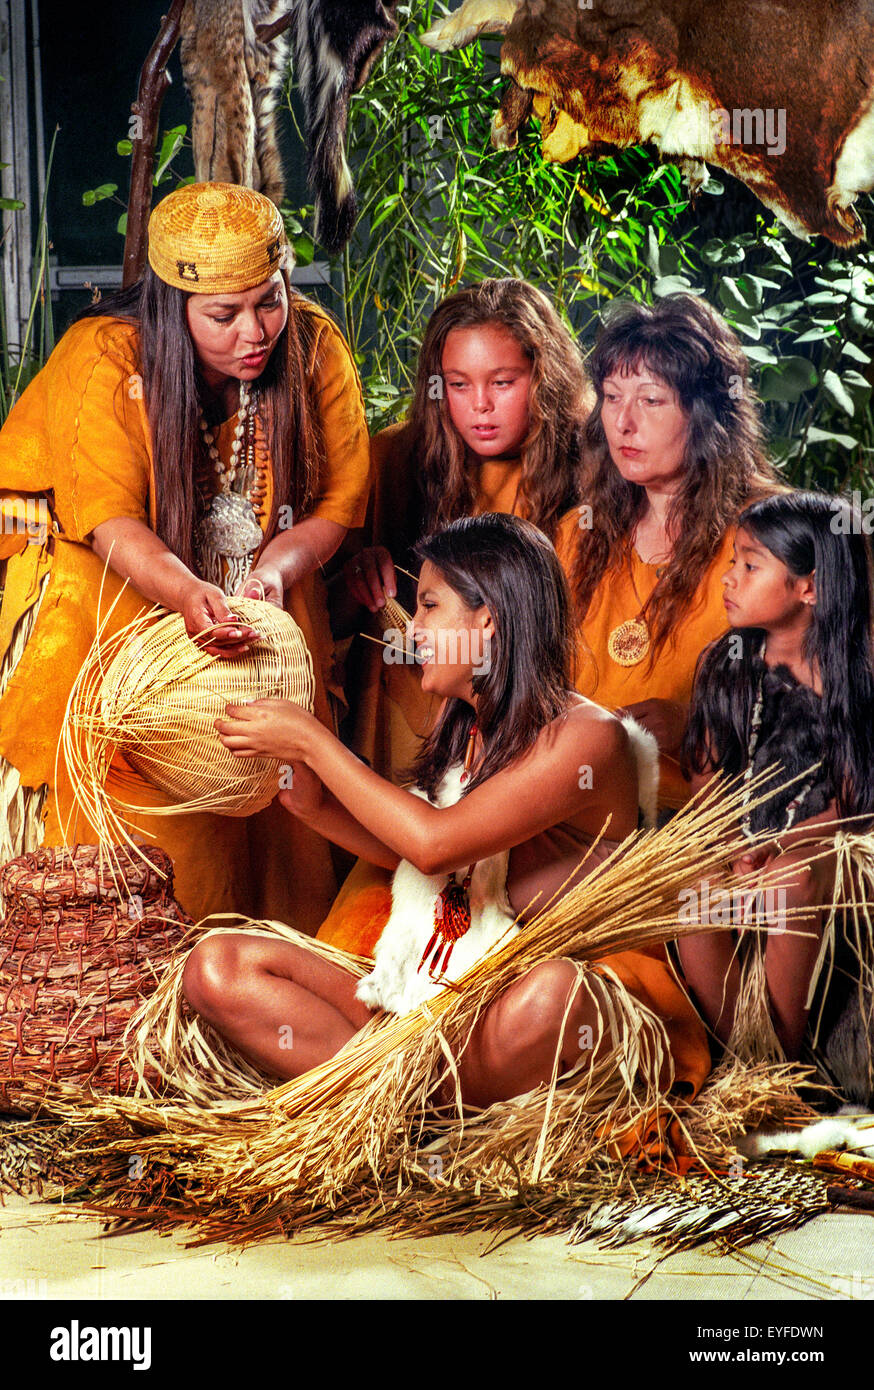 Wearing historical costumes, members of the California tribe of Acjahemen or Juaneno Indians in San Juan Capistrano, CA, reenact an ancient teaching scene where older members explain tribal lore to younger ones. This scene involves basket weaving.